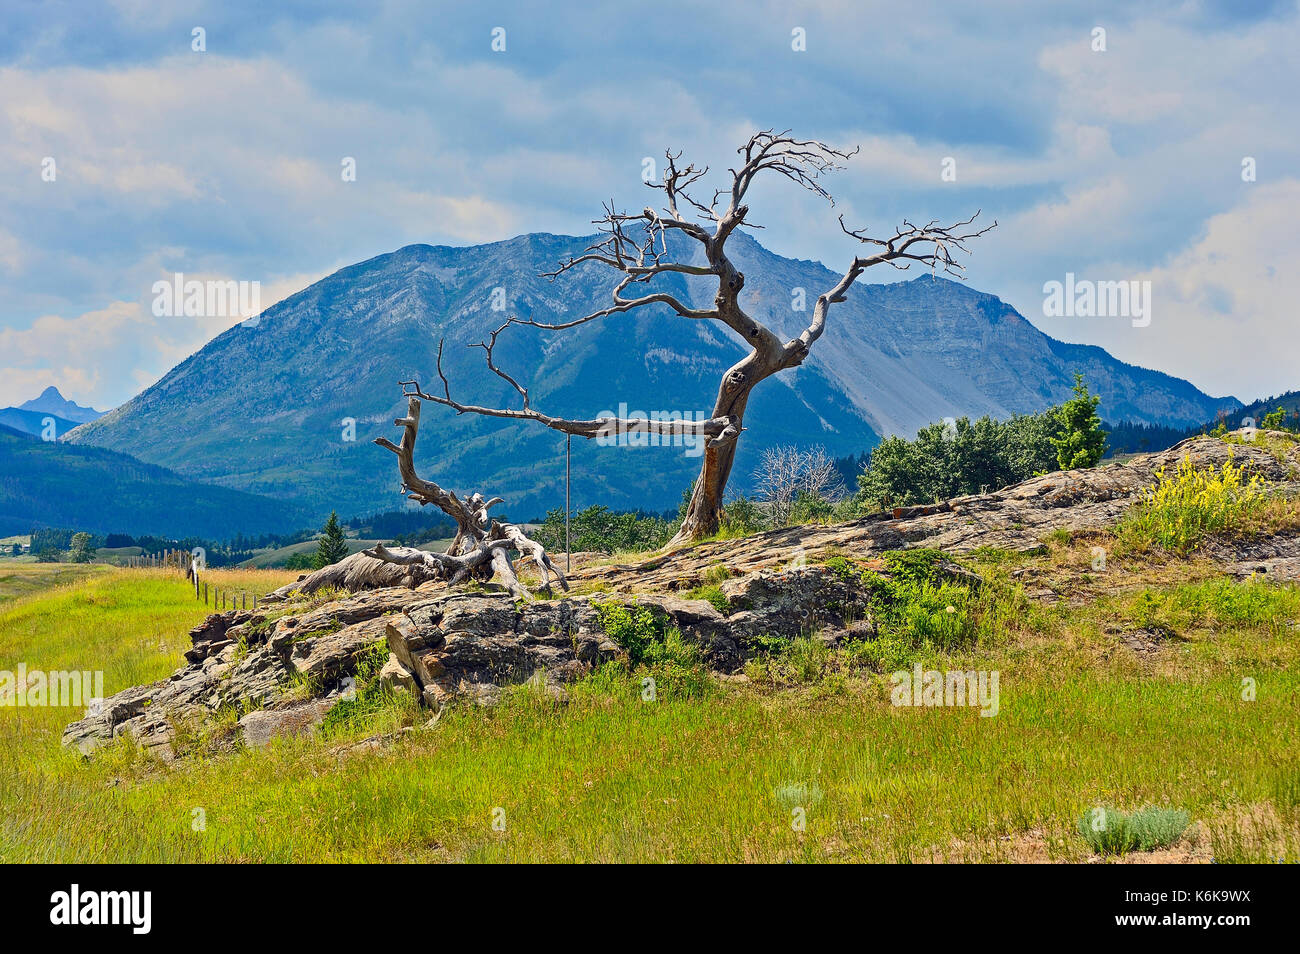 This Limber Pine tree is known as the Burmis tree for the former town of Burmis on Alberta highway 3  and stands as a sentinel to the Crowsnest Pass - Stock Image